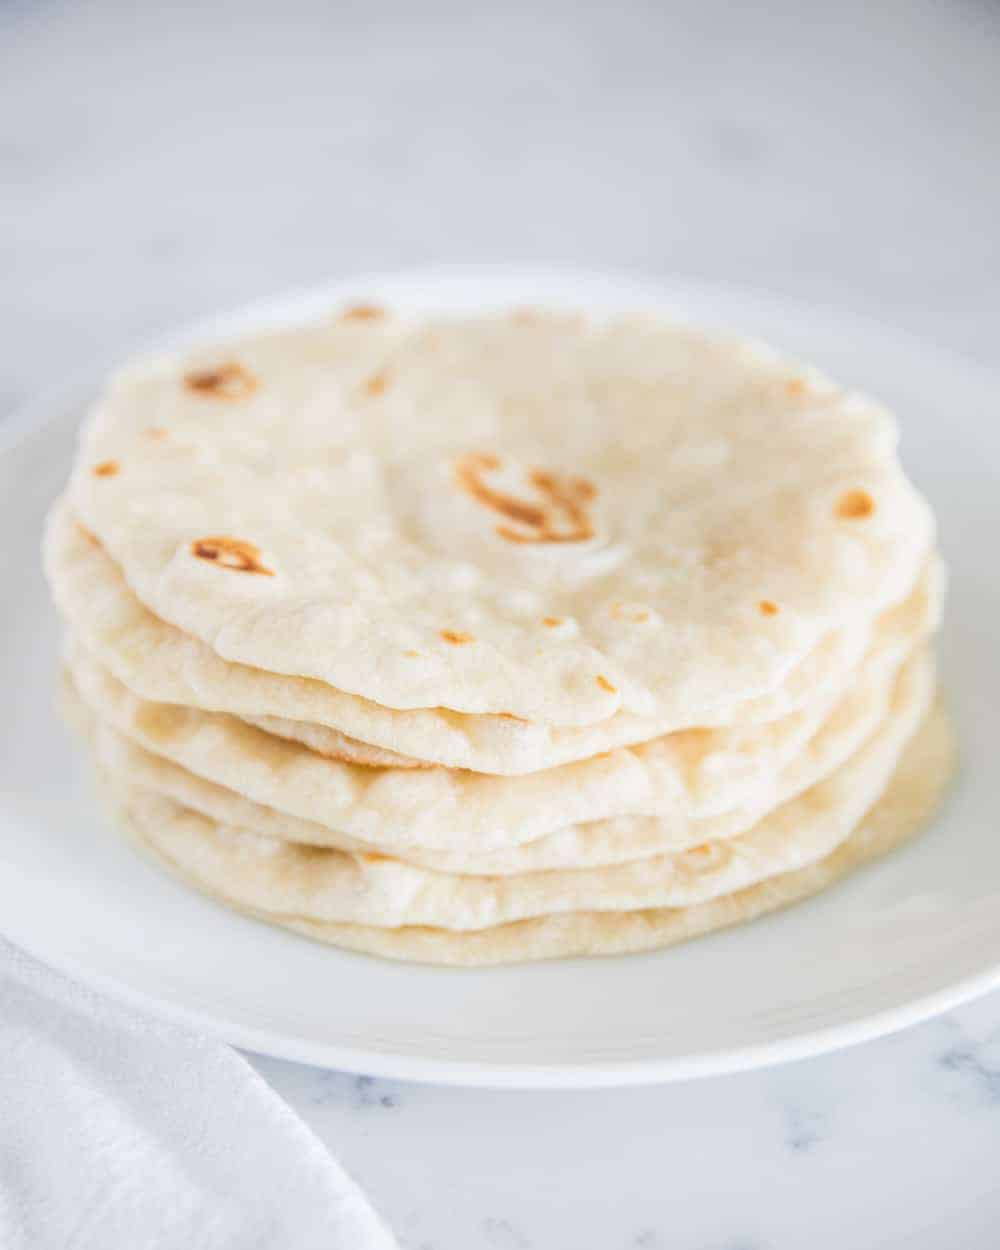 stack of homemade flour tortillas on a white plate